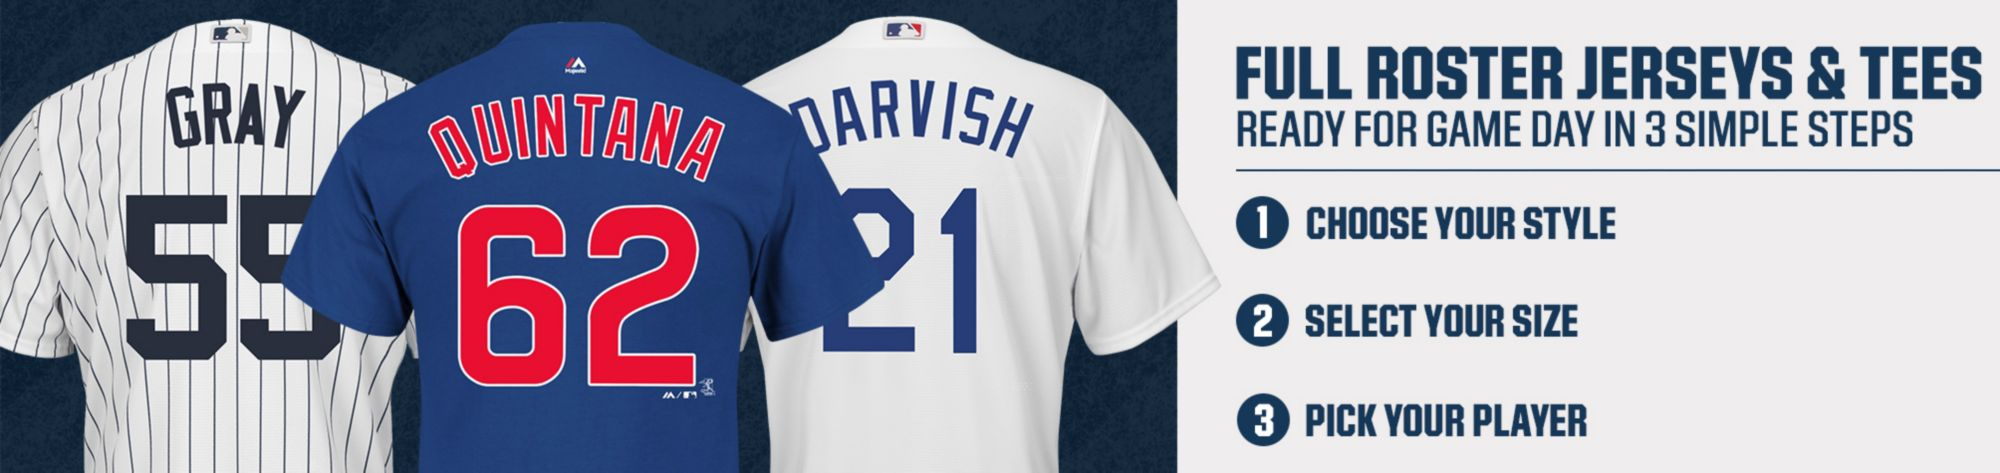 MLB Full Roster Jerseys & Tees